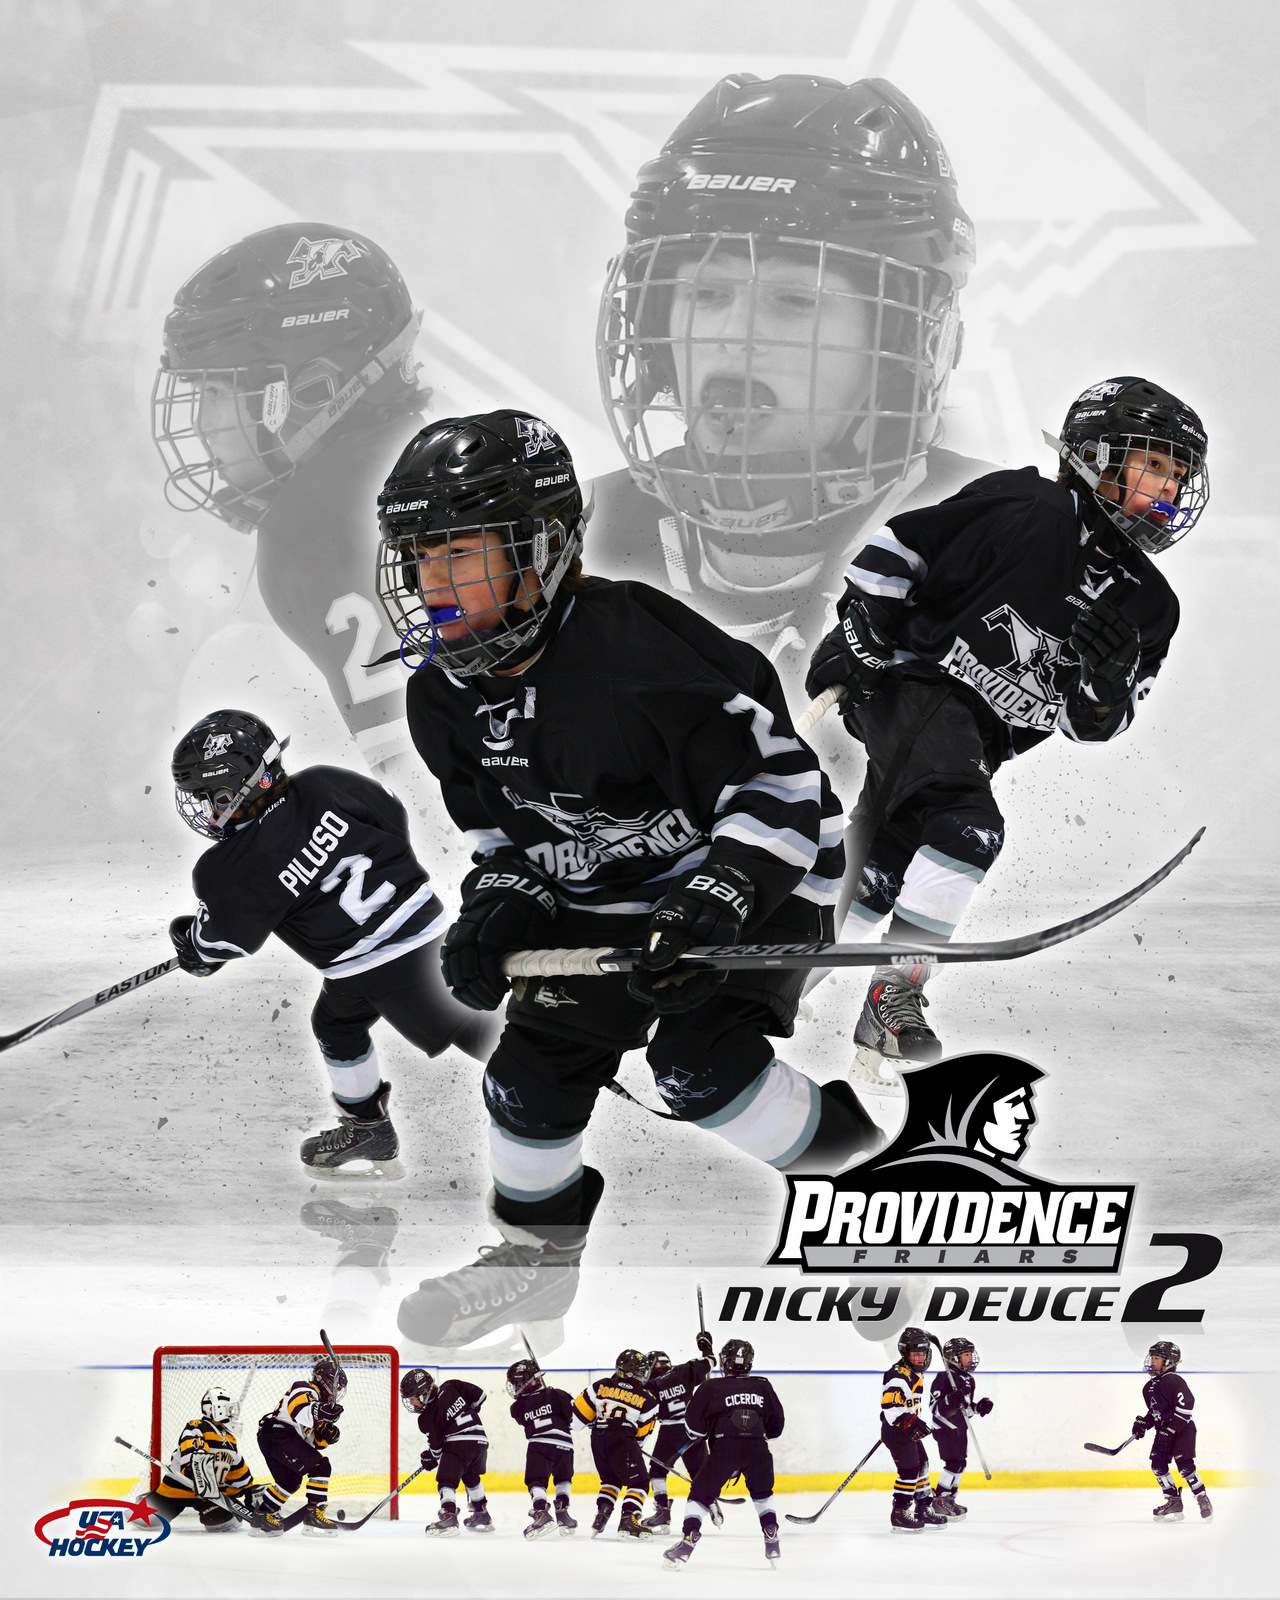 SilverPeak Studios Commemorative Poster Samples Action Sports Hockey Photography (10)